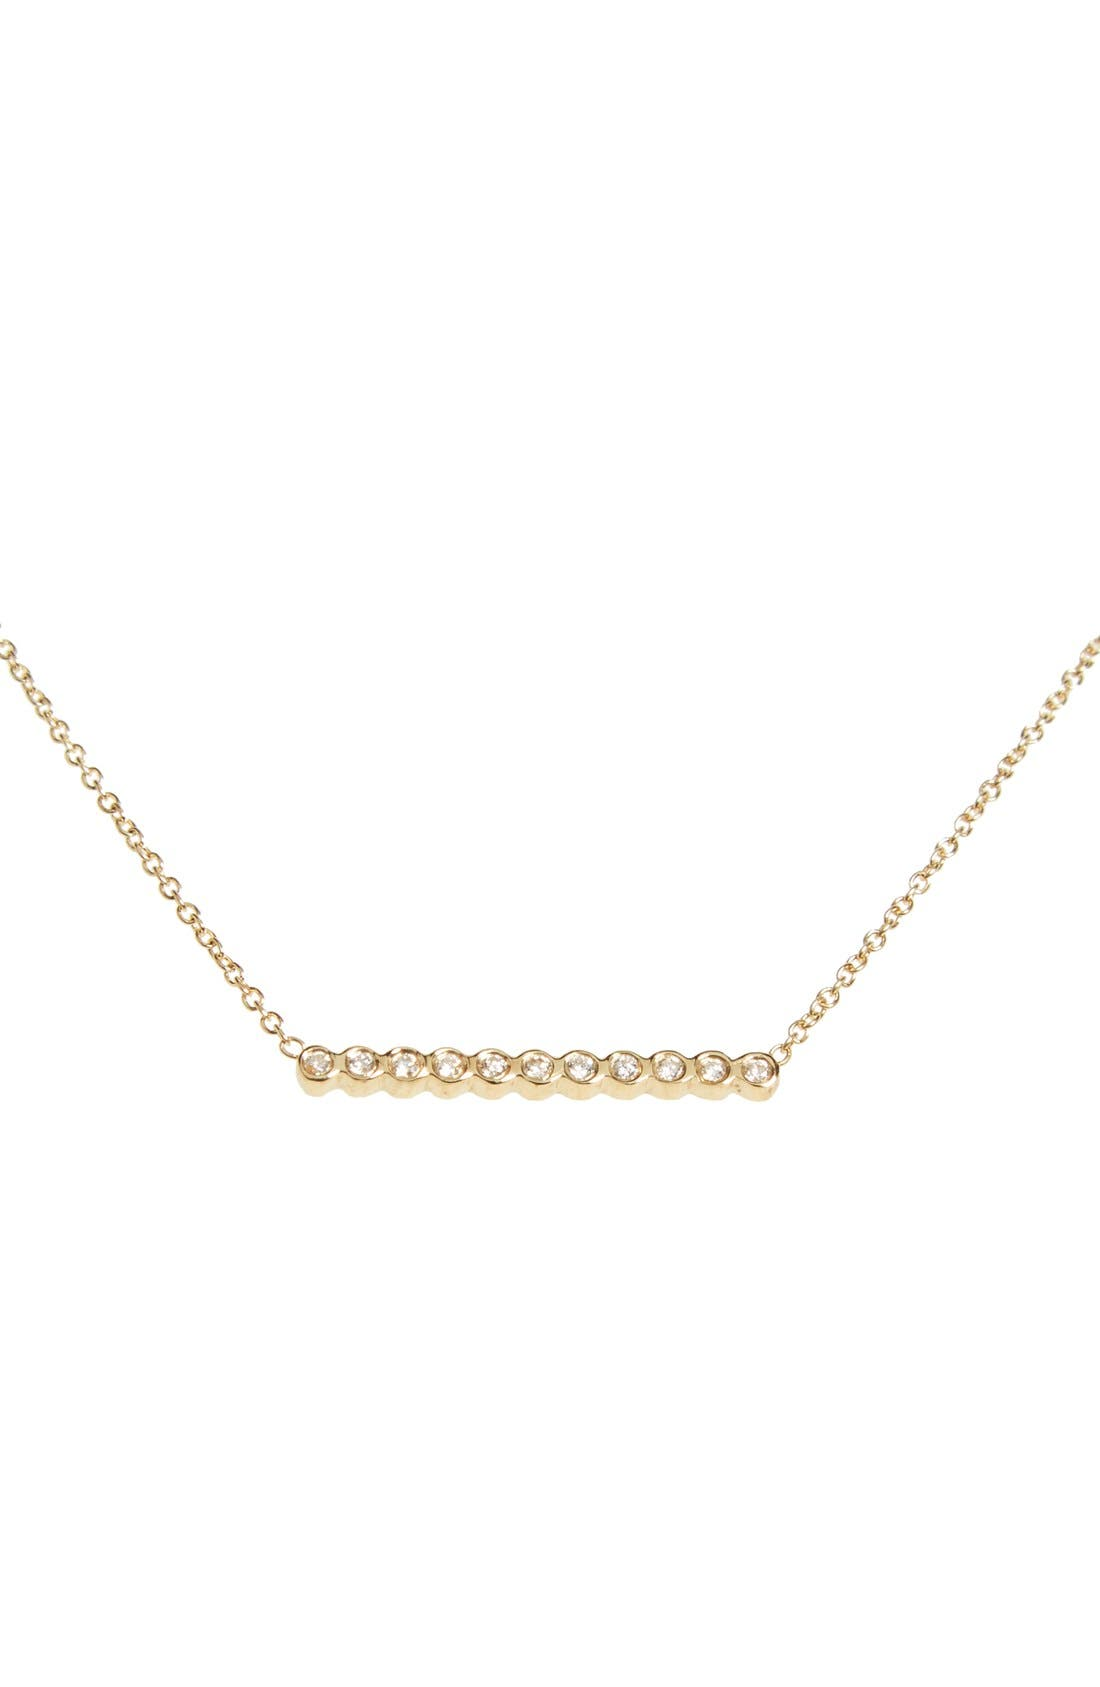 ZOË CHICCO Diamond Bar Pendant Necklace